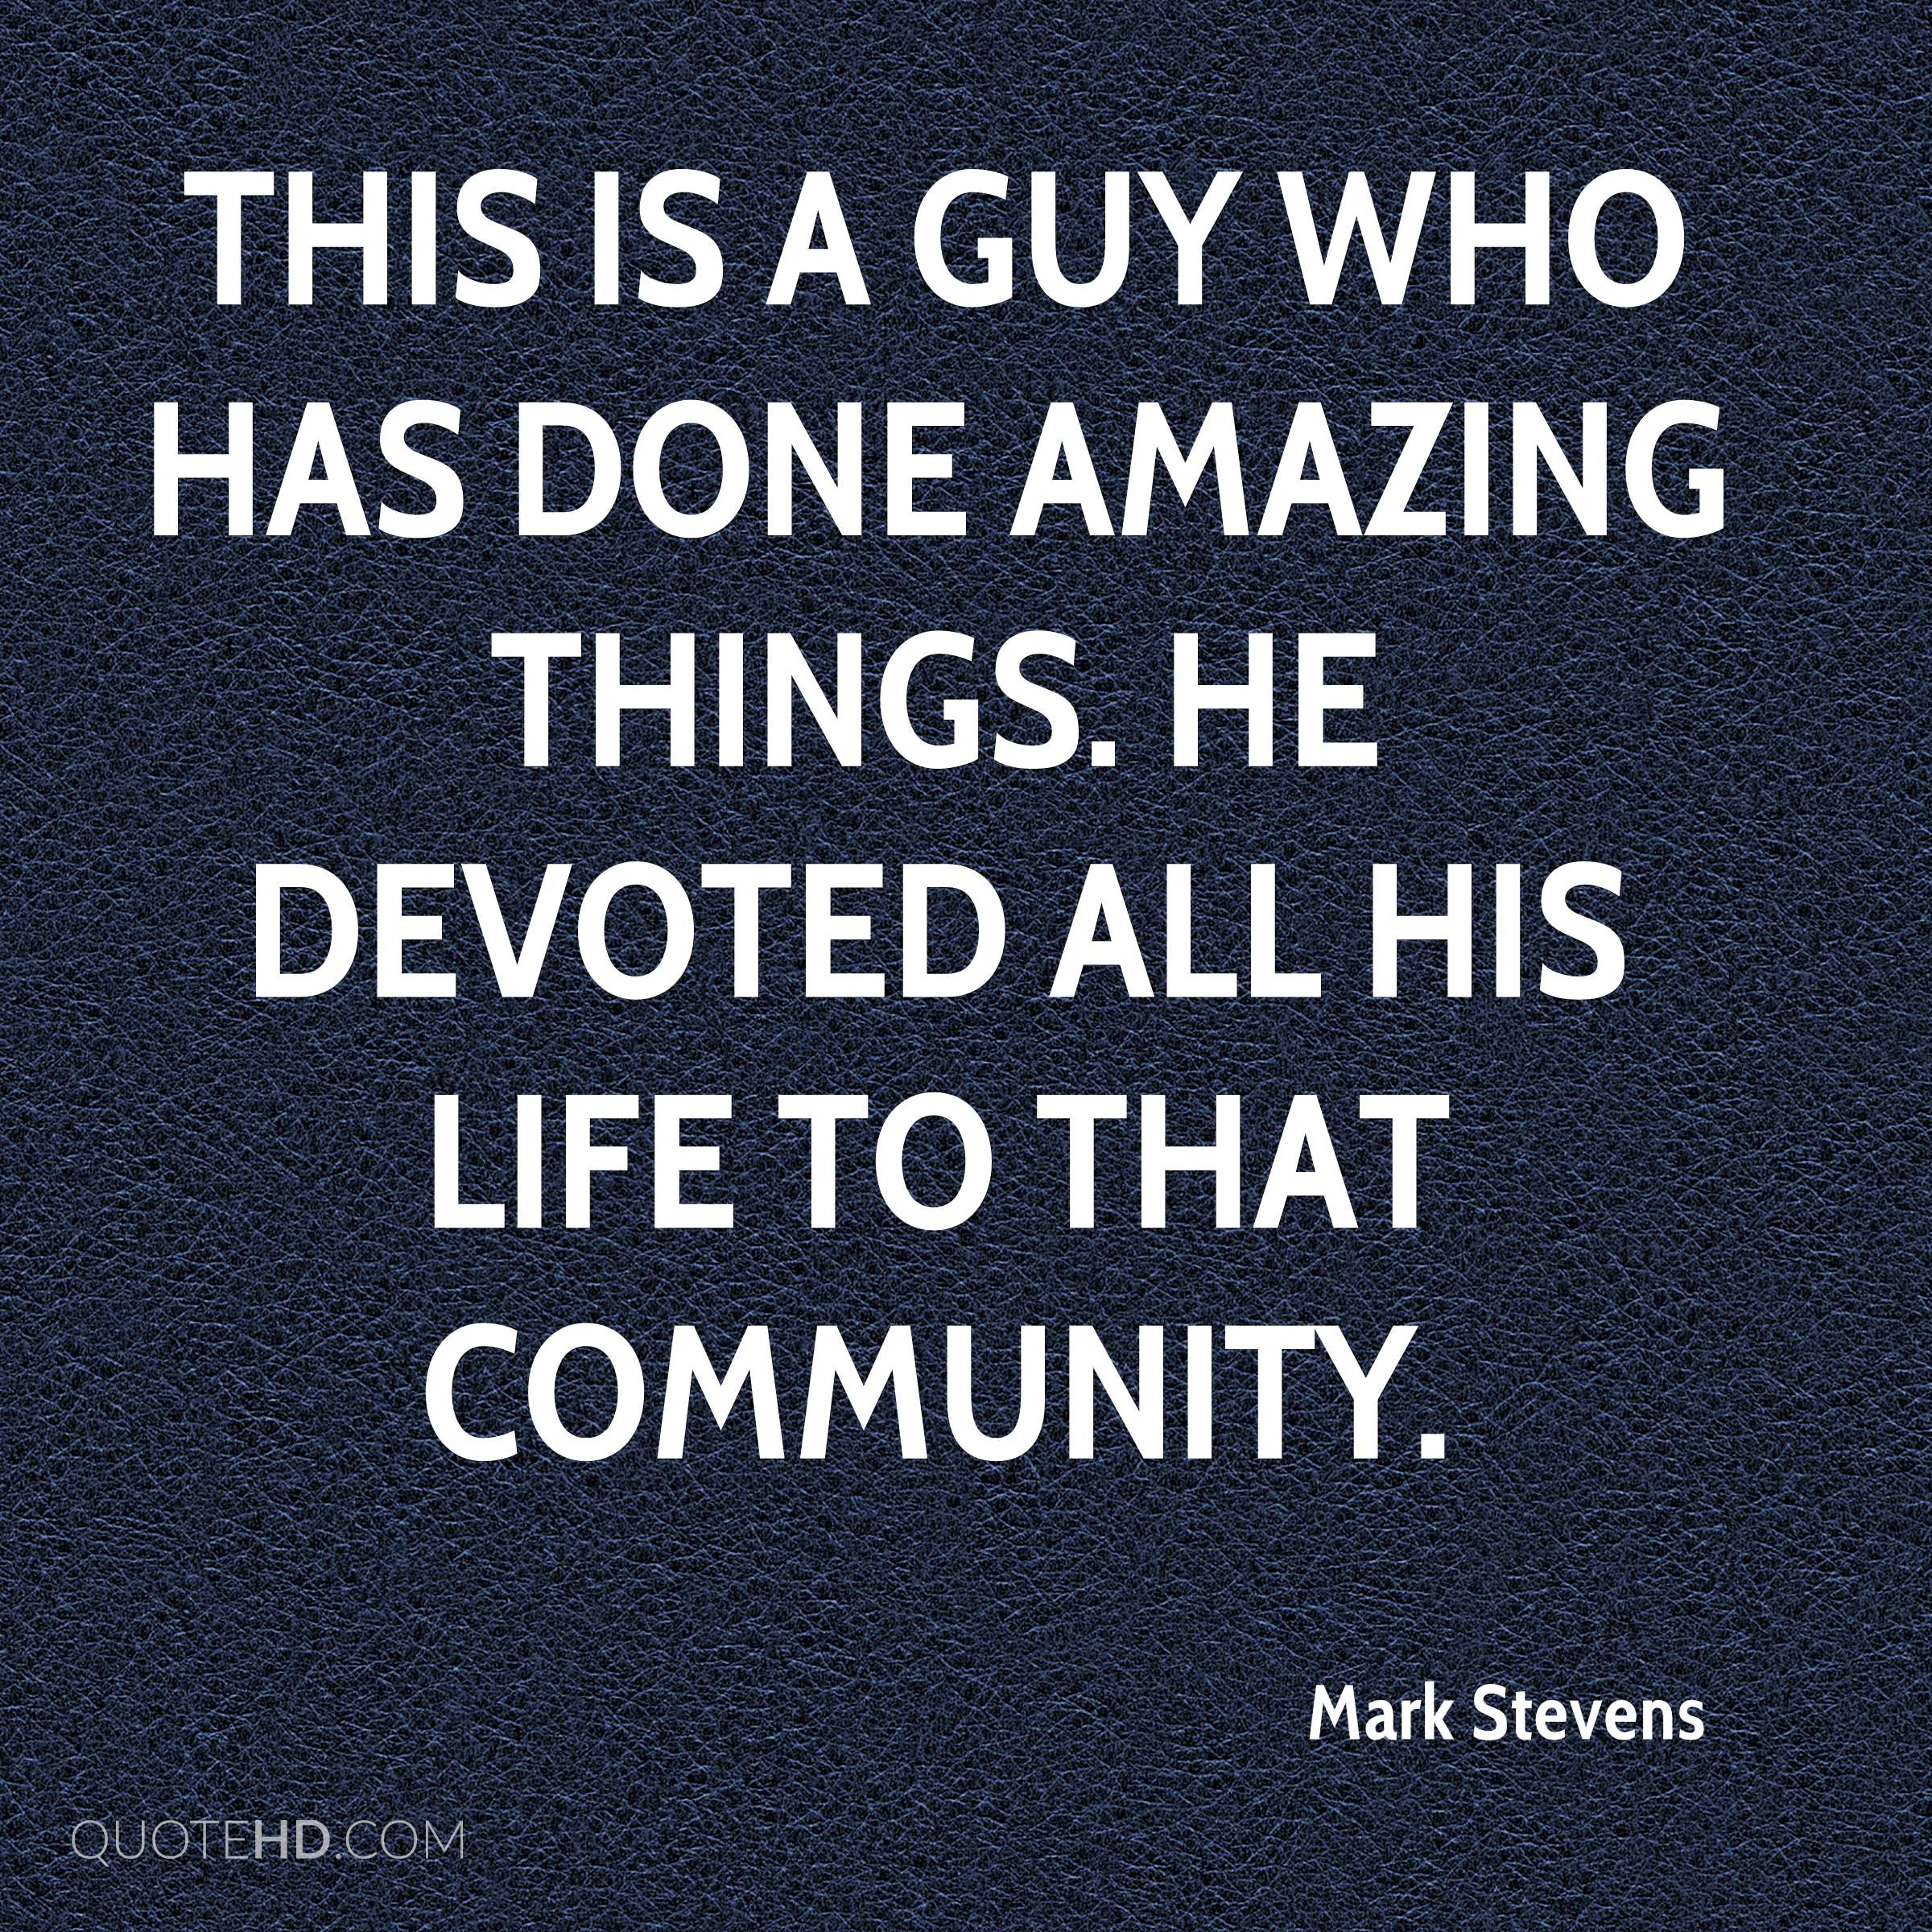 This is a guy who has done amazing things. He devoted all his life to that community.